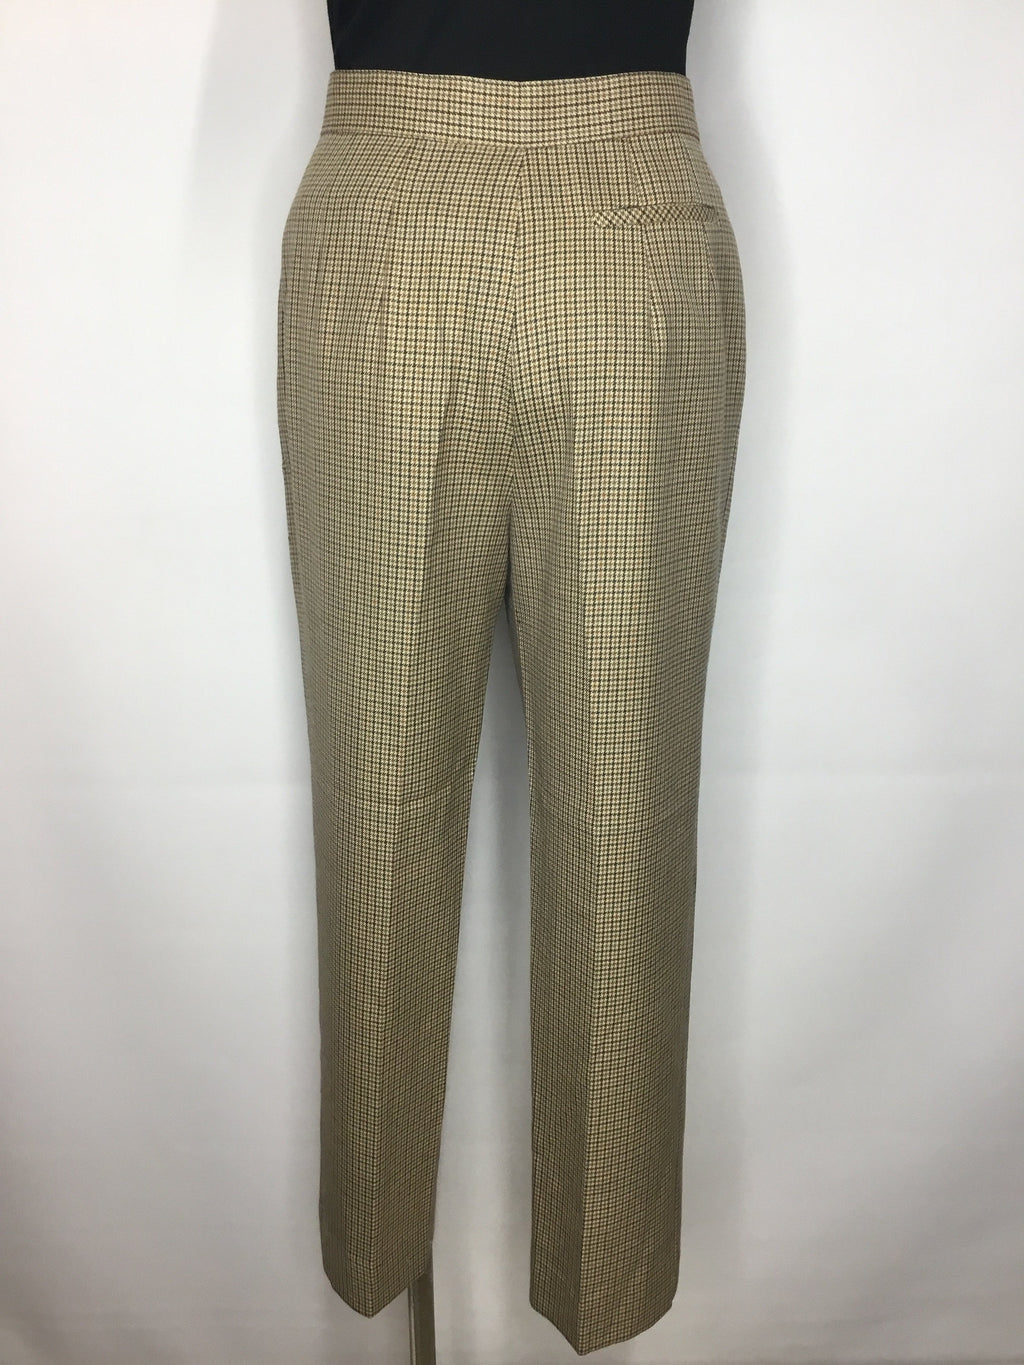 Houndstooth Camel Pants